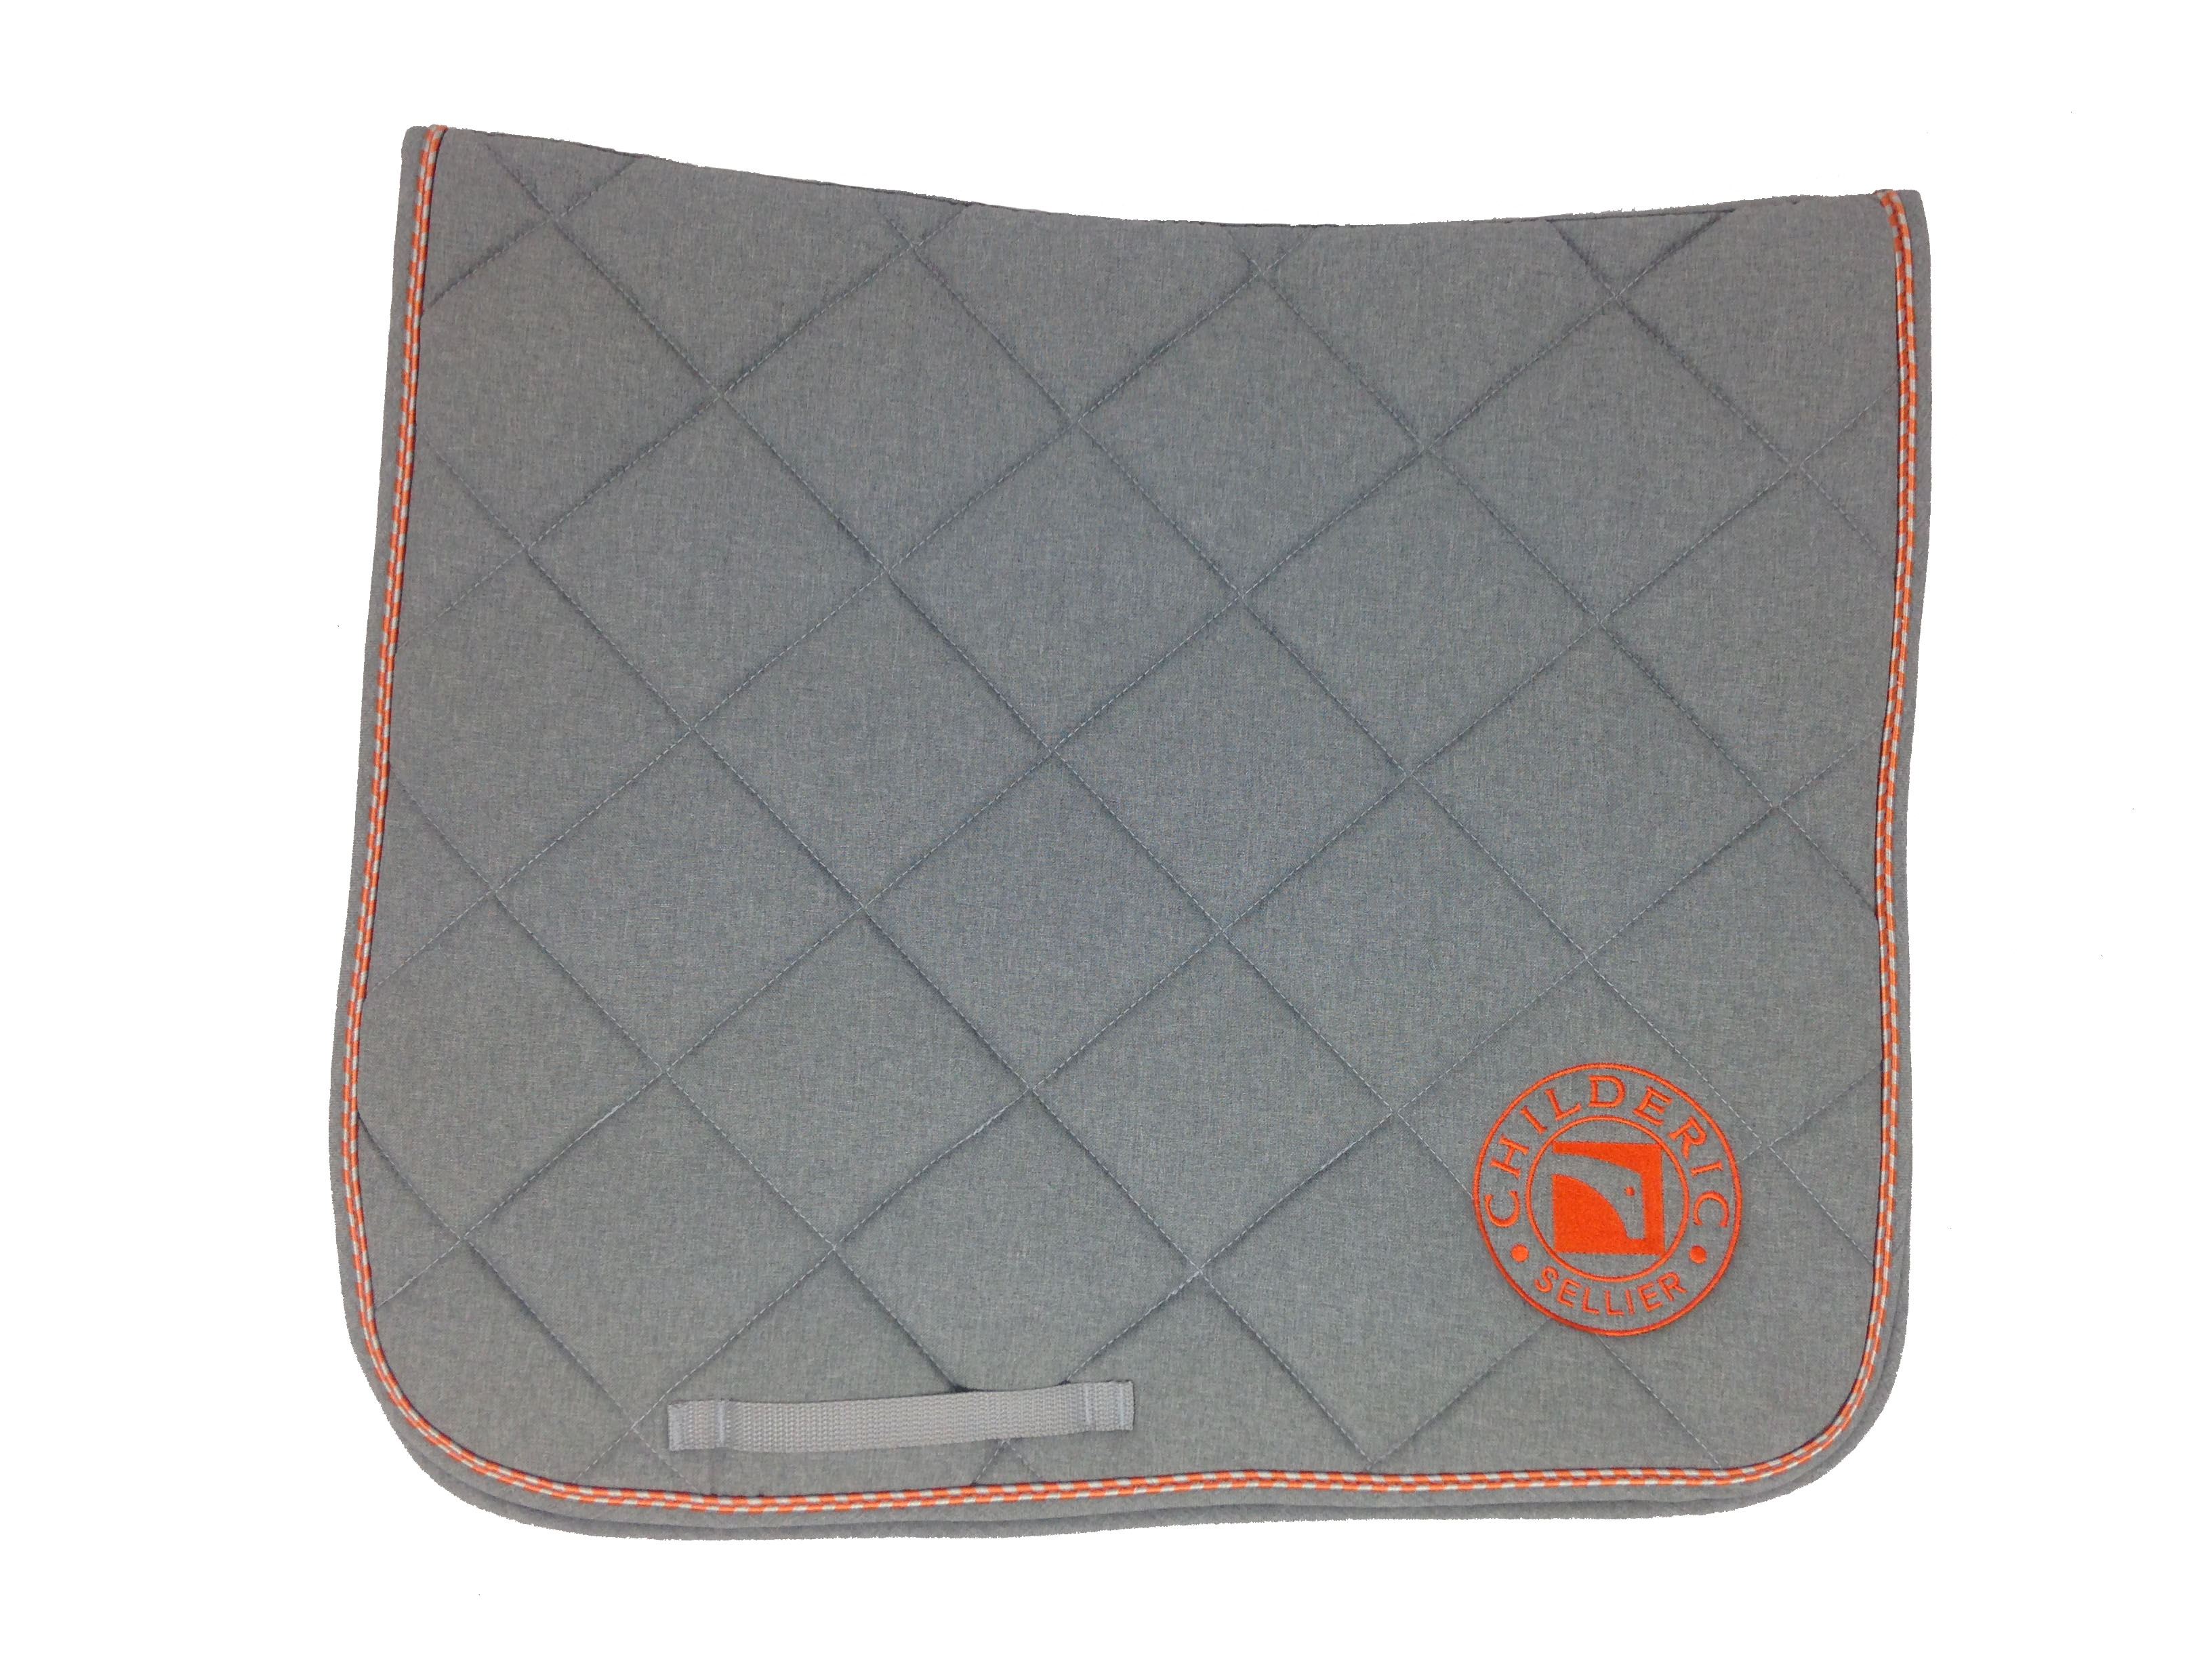 Tapis Orange Et Gris Childeric Tapis Dressage Gris Orange Copie Childéric Sellier